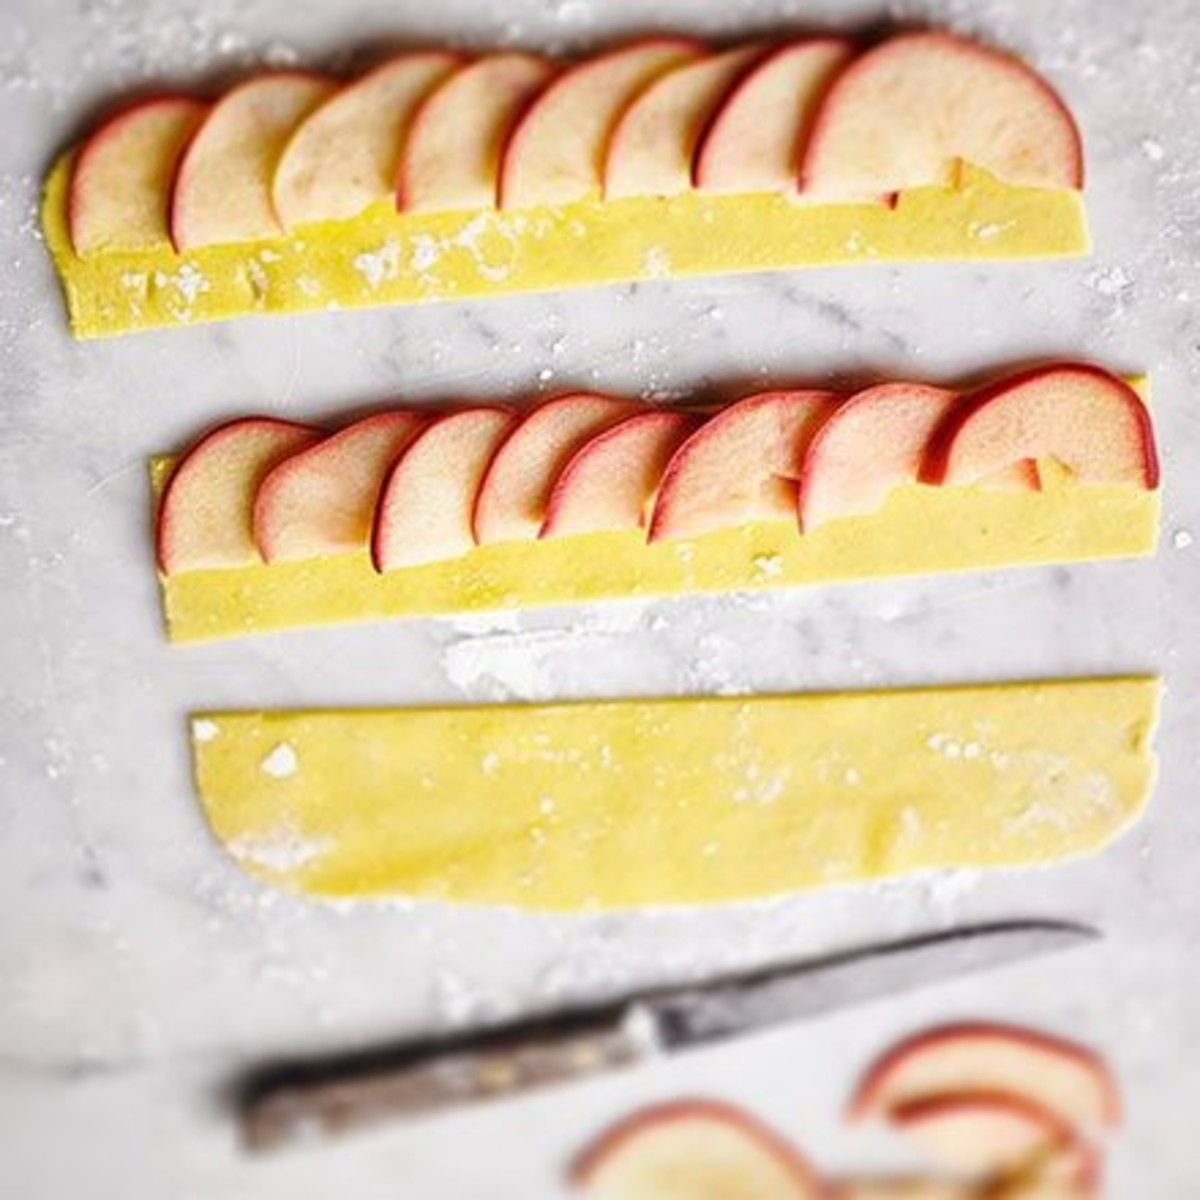 Overlap each apple slice